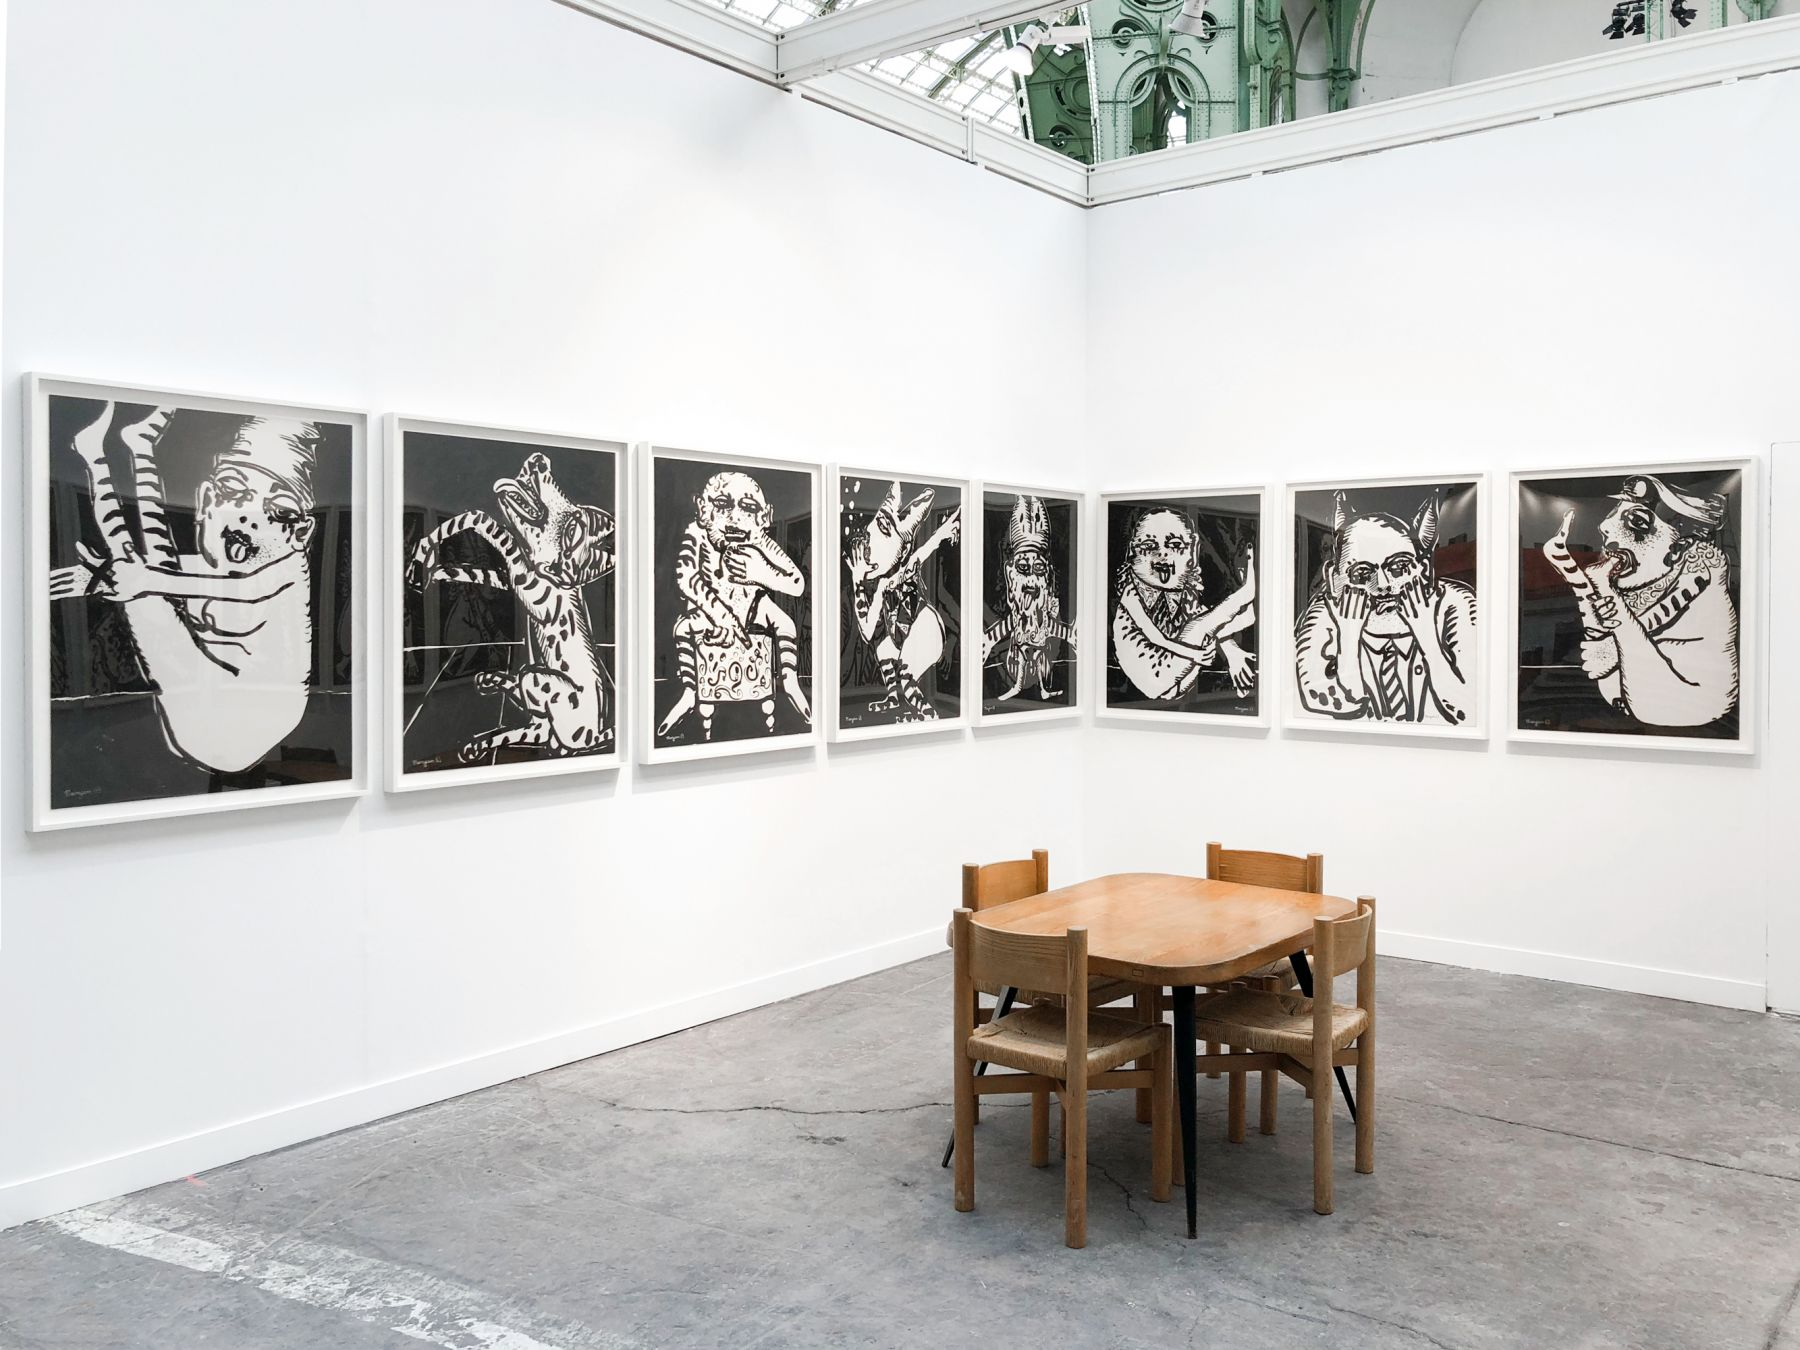 Installation view of Maryan at FIAC, Paris, 2018